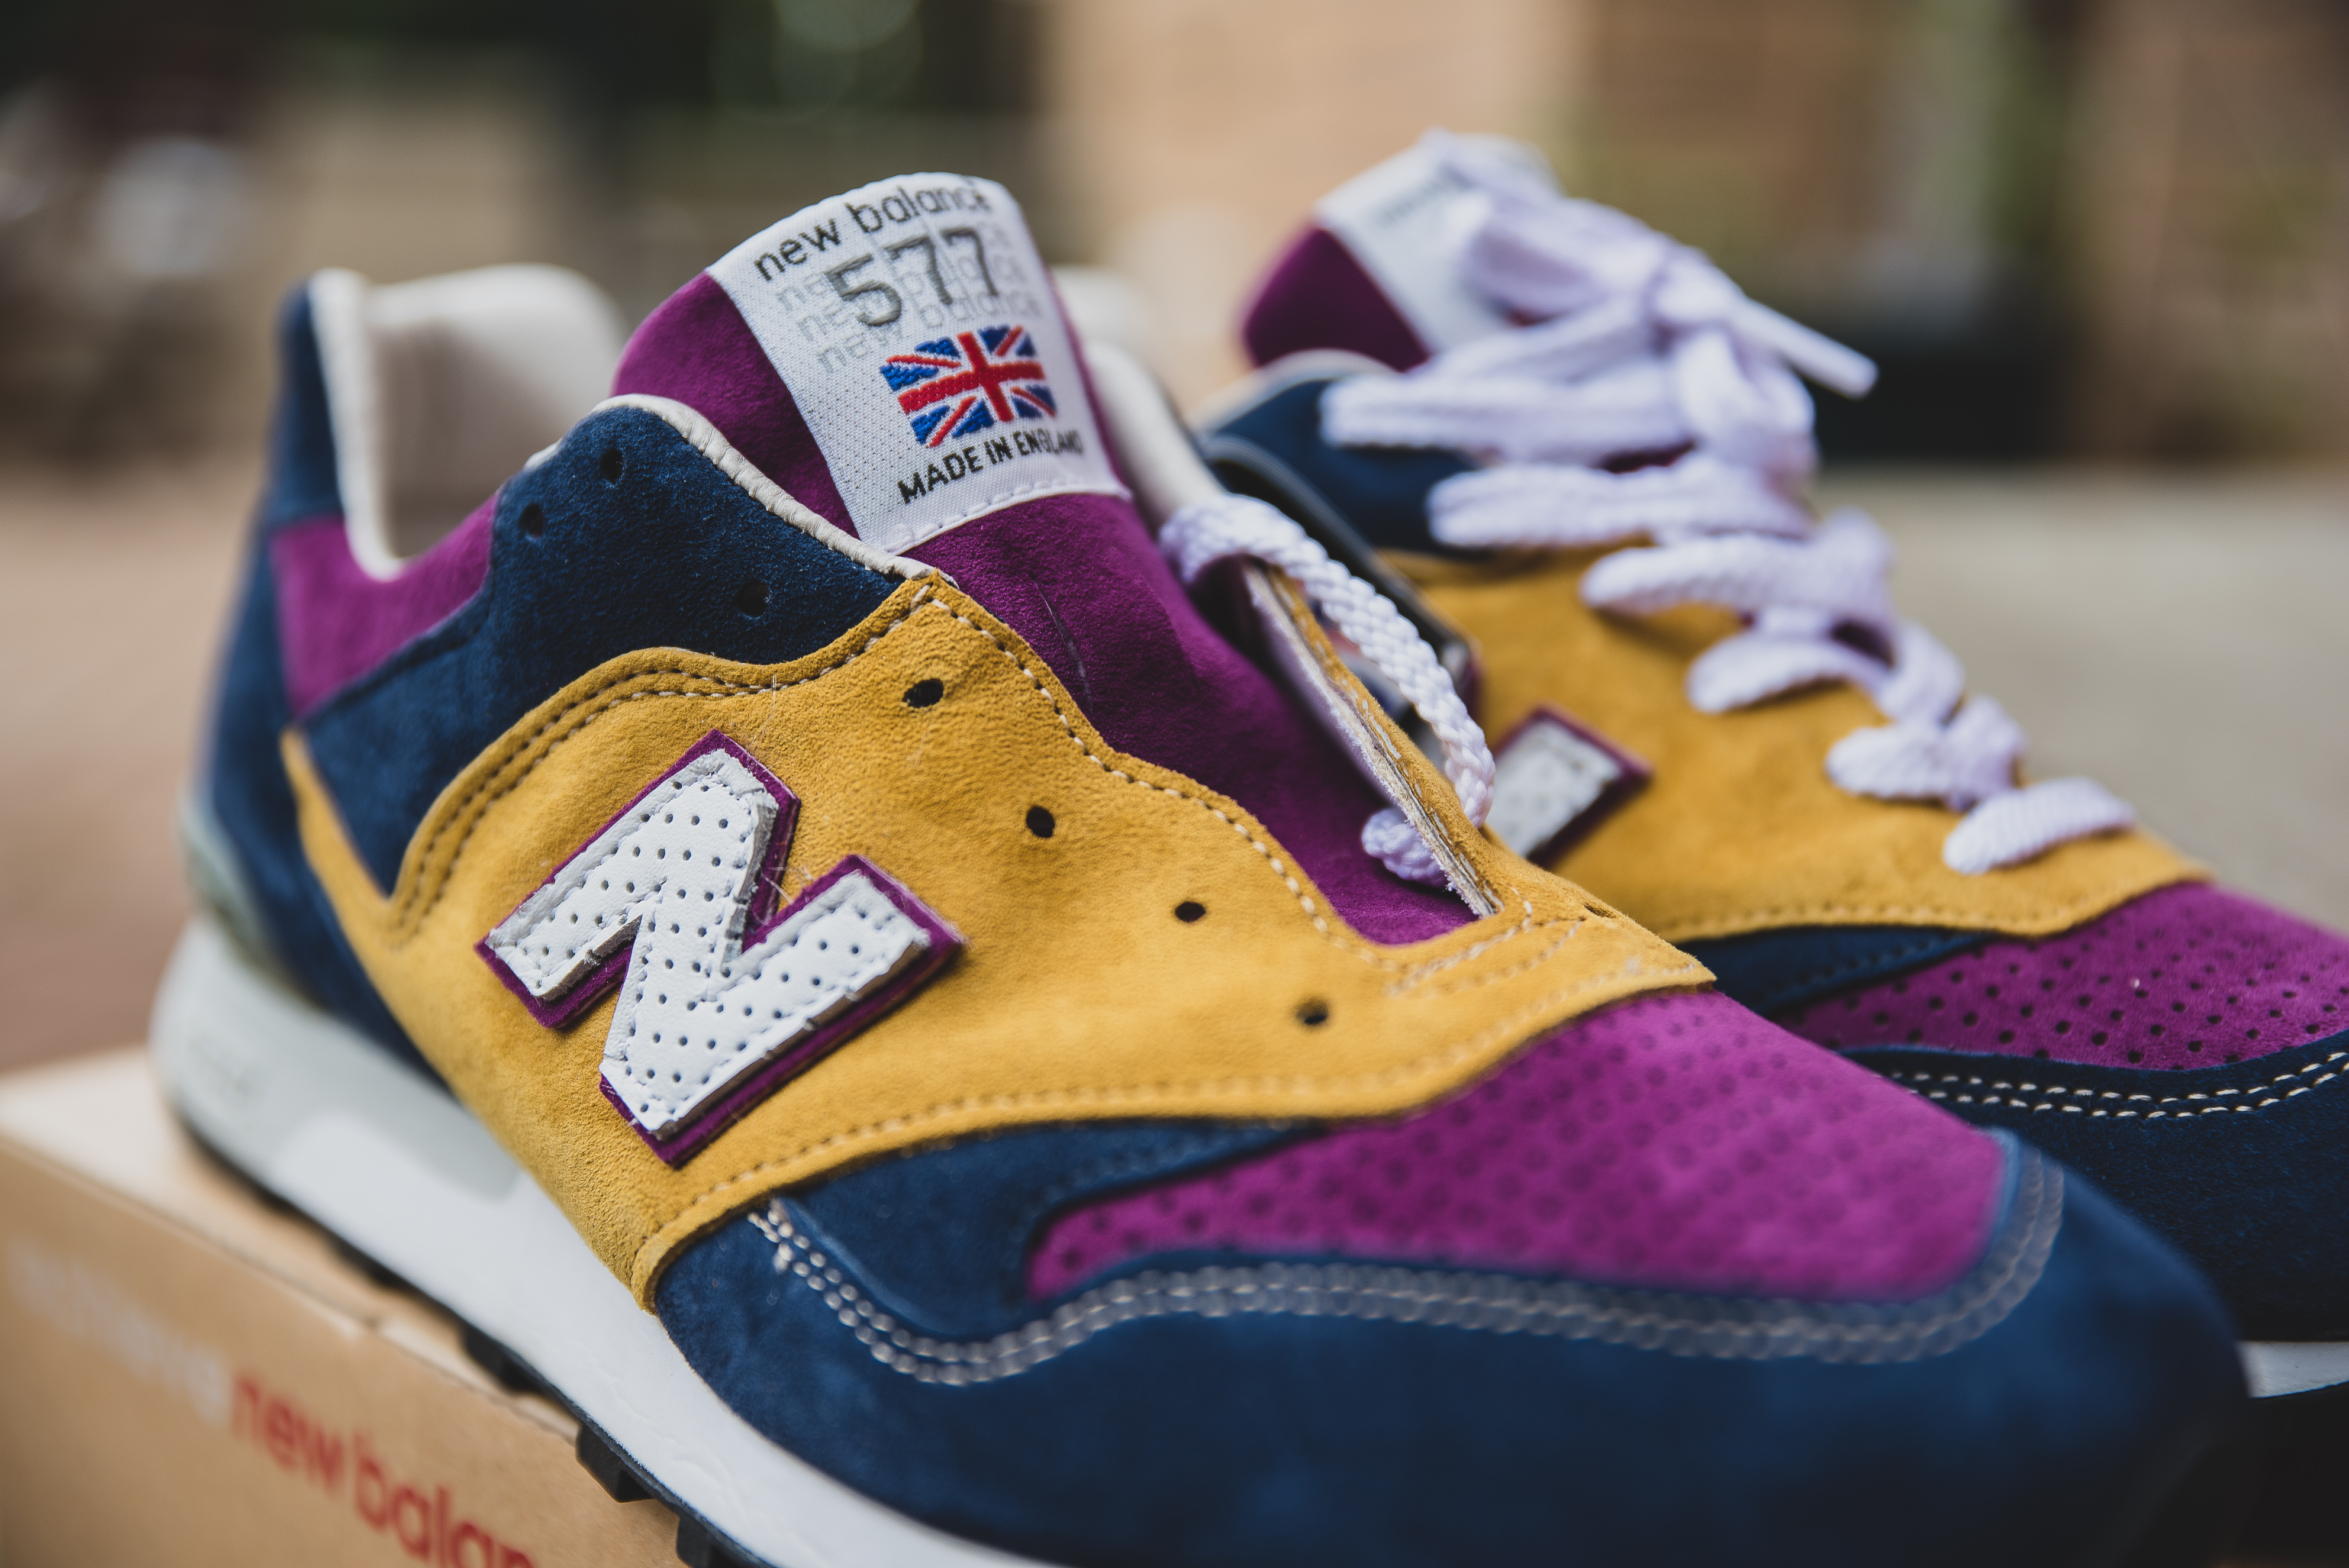 new balance 577 encapsulation